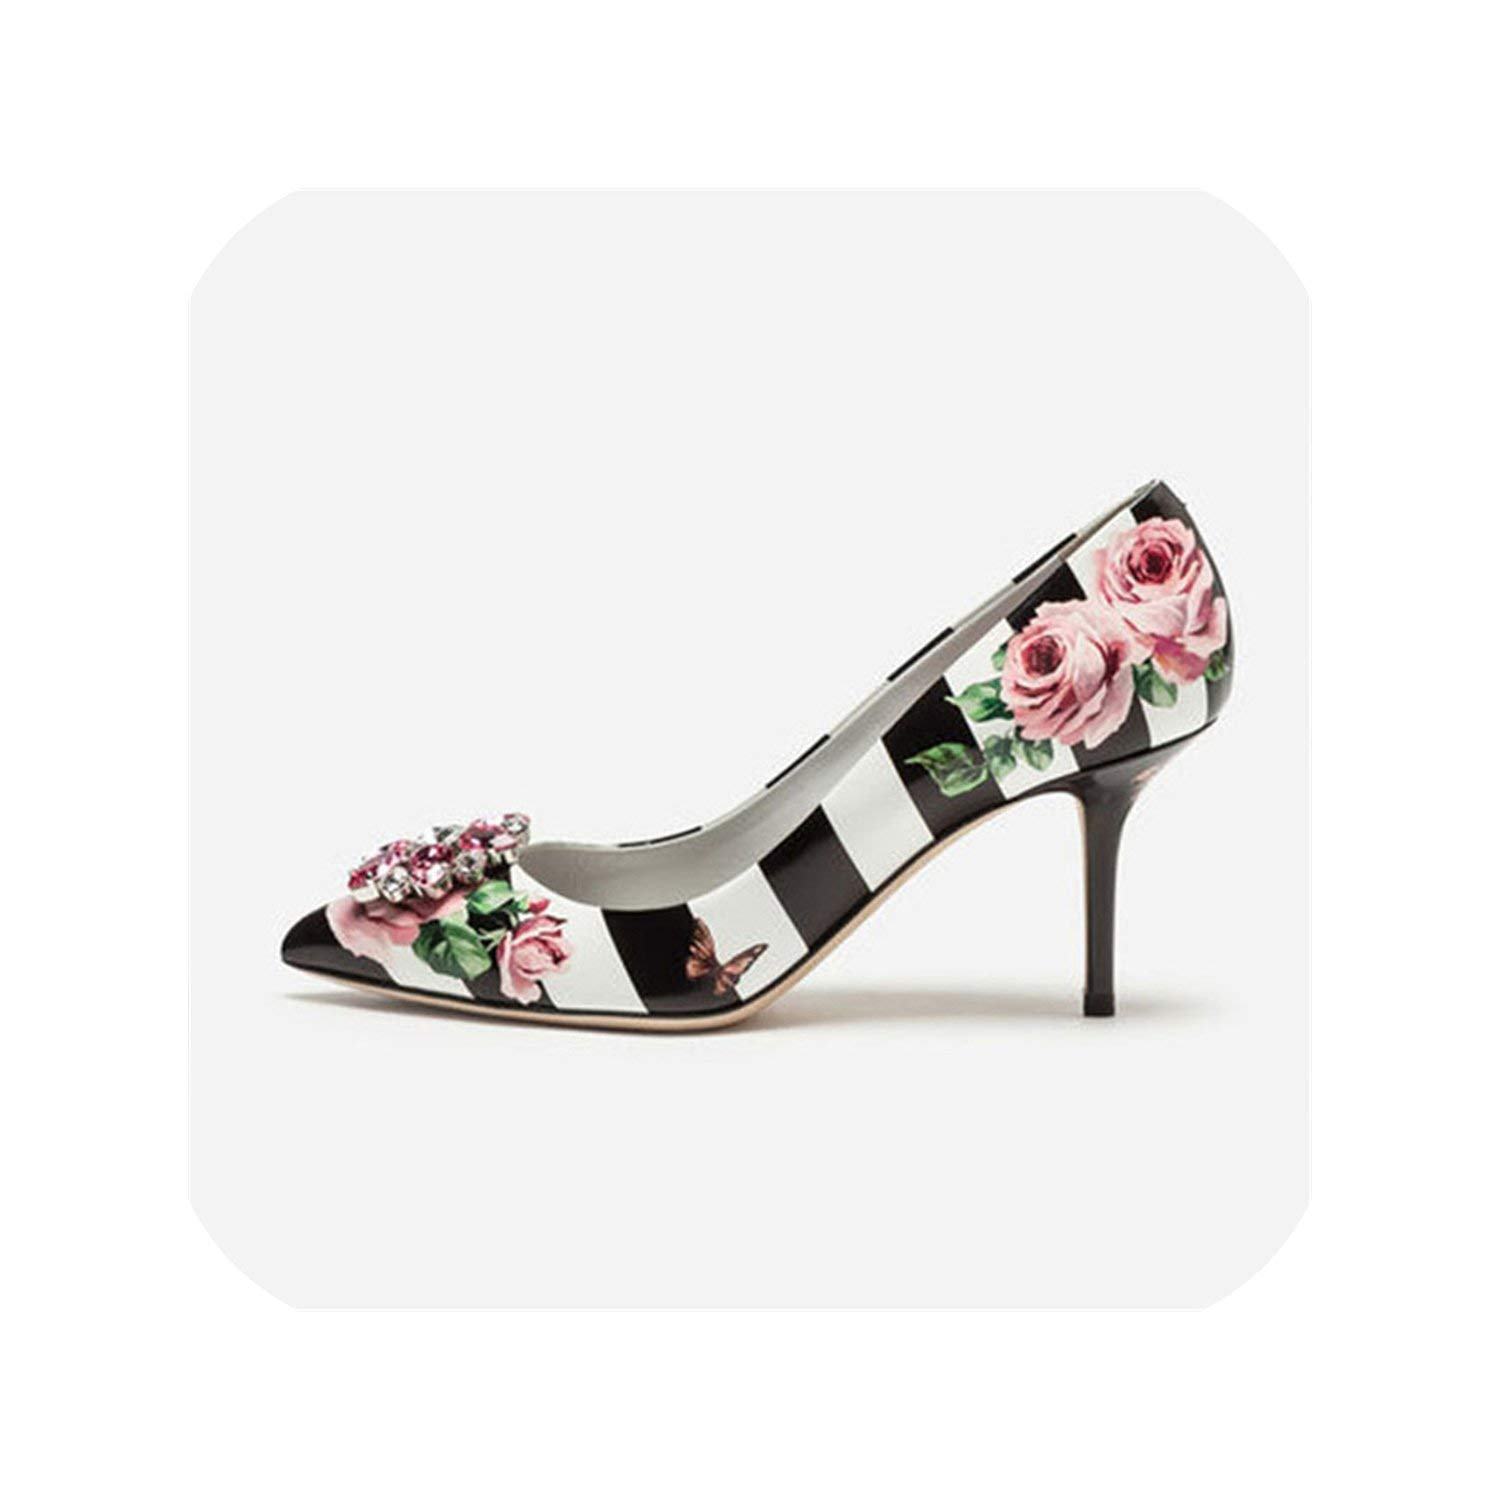 Black 7cm The Hot Rock-sandals Printed color High Heel shoes Woman Point Toe Shallow Thin Heel Bling Crystal Wedding shoes Women